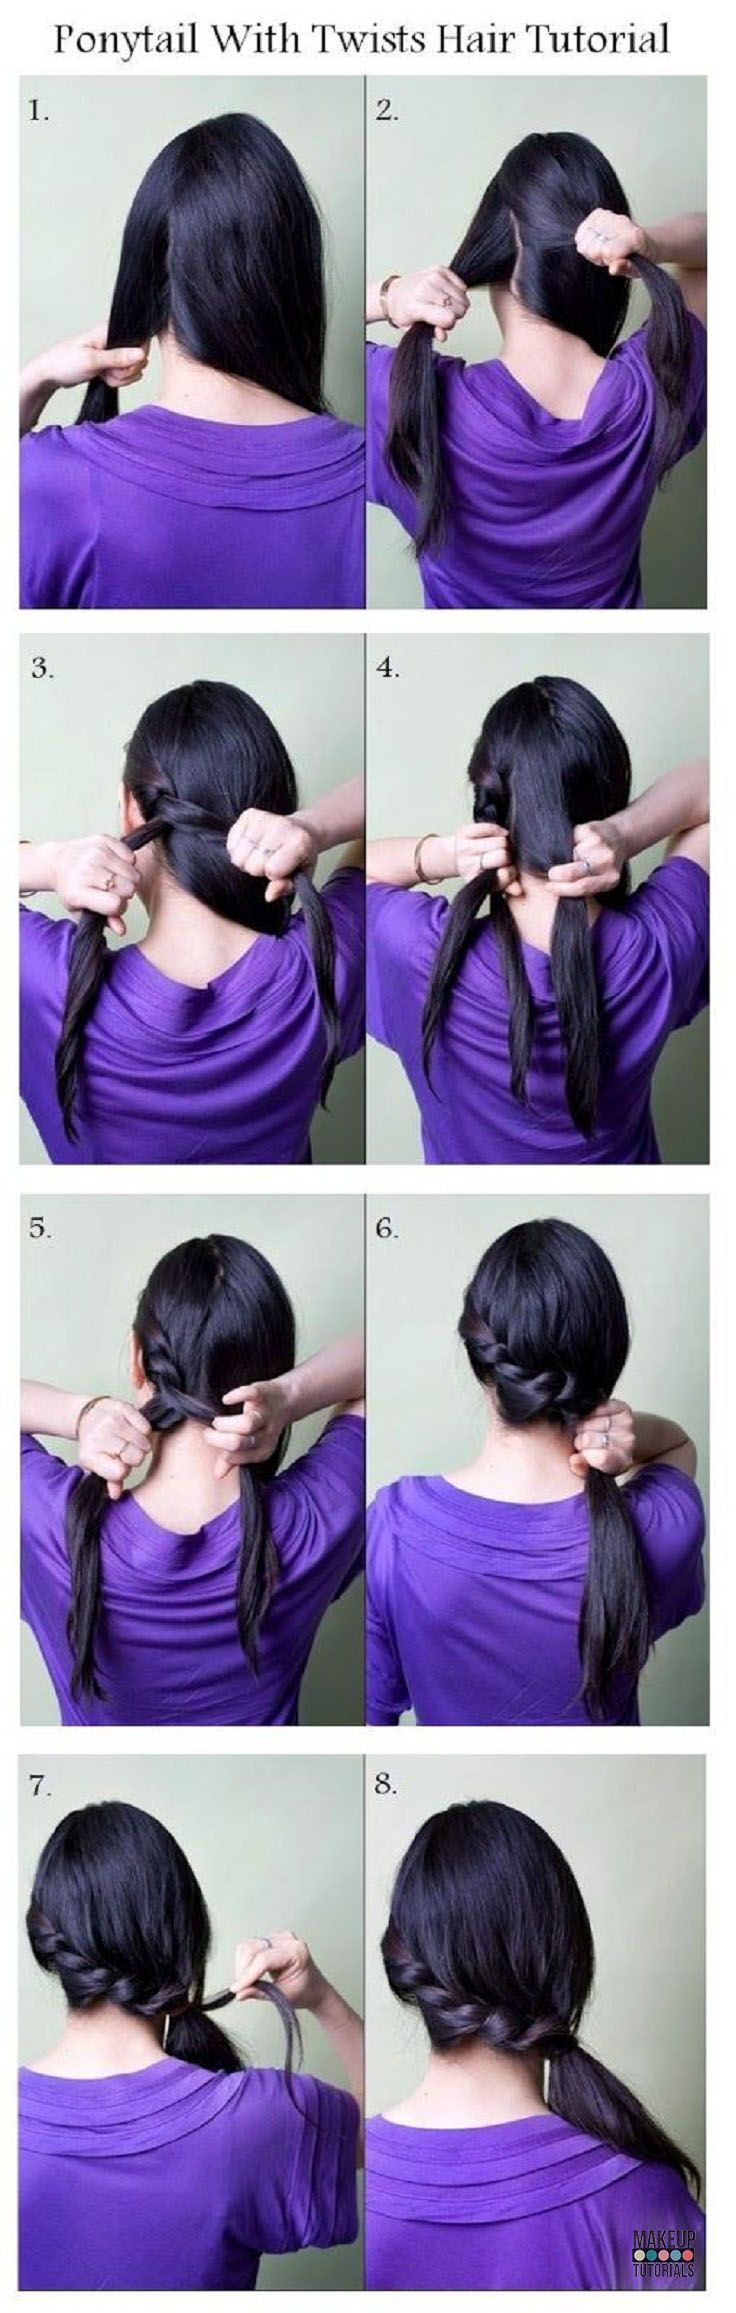 japanese online fashion Ponytail With Twist Hair Tutorial   Classy and Casual Ponytail for Long Hair by Makeup Tutorials http   makeuptutorials com easy hairstyles for work